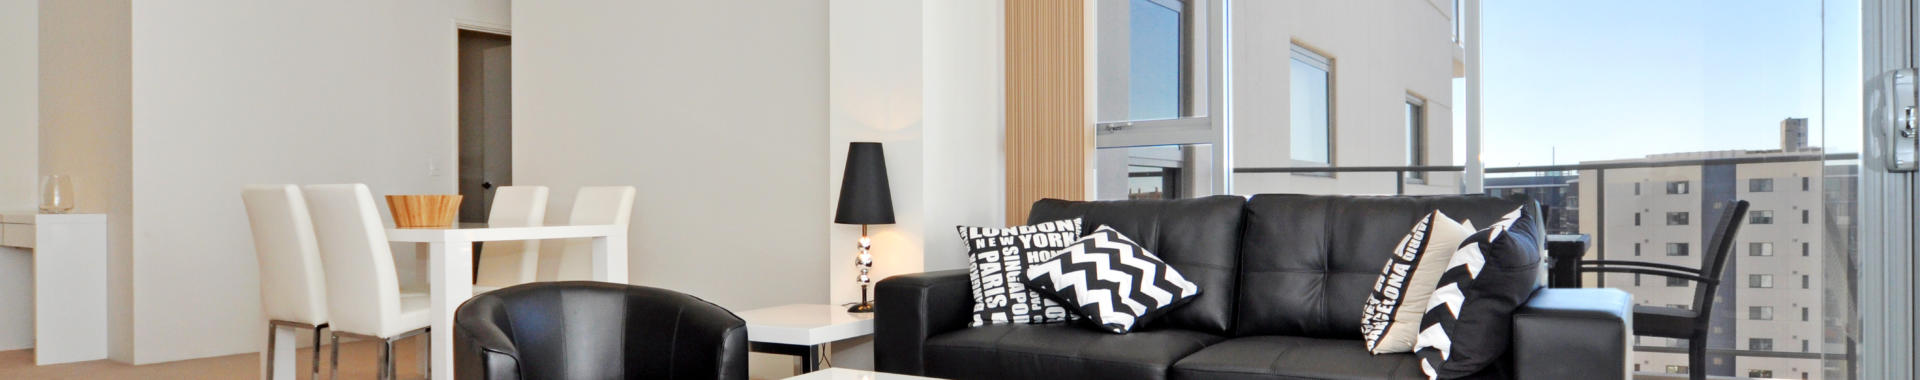 Perth AdelaideTerrace 1 bed corporate apartment lounge